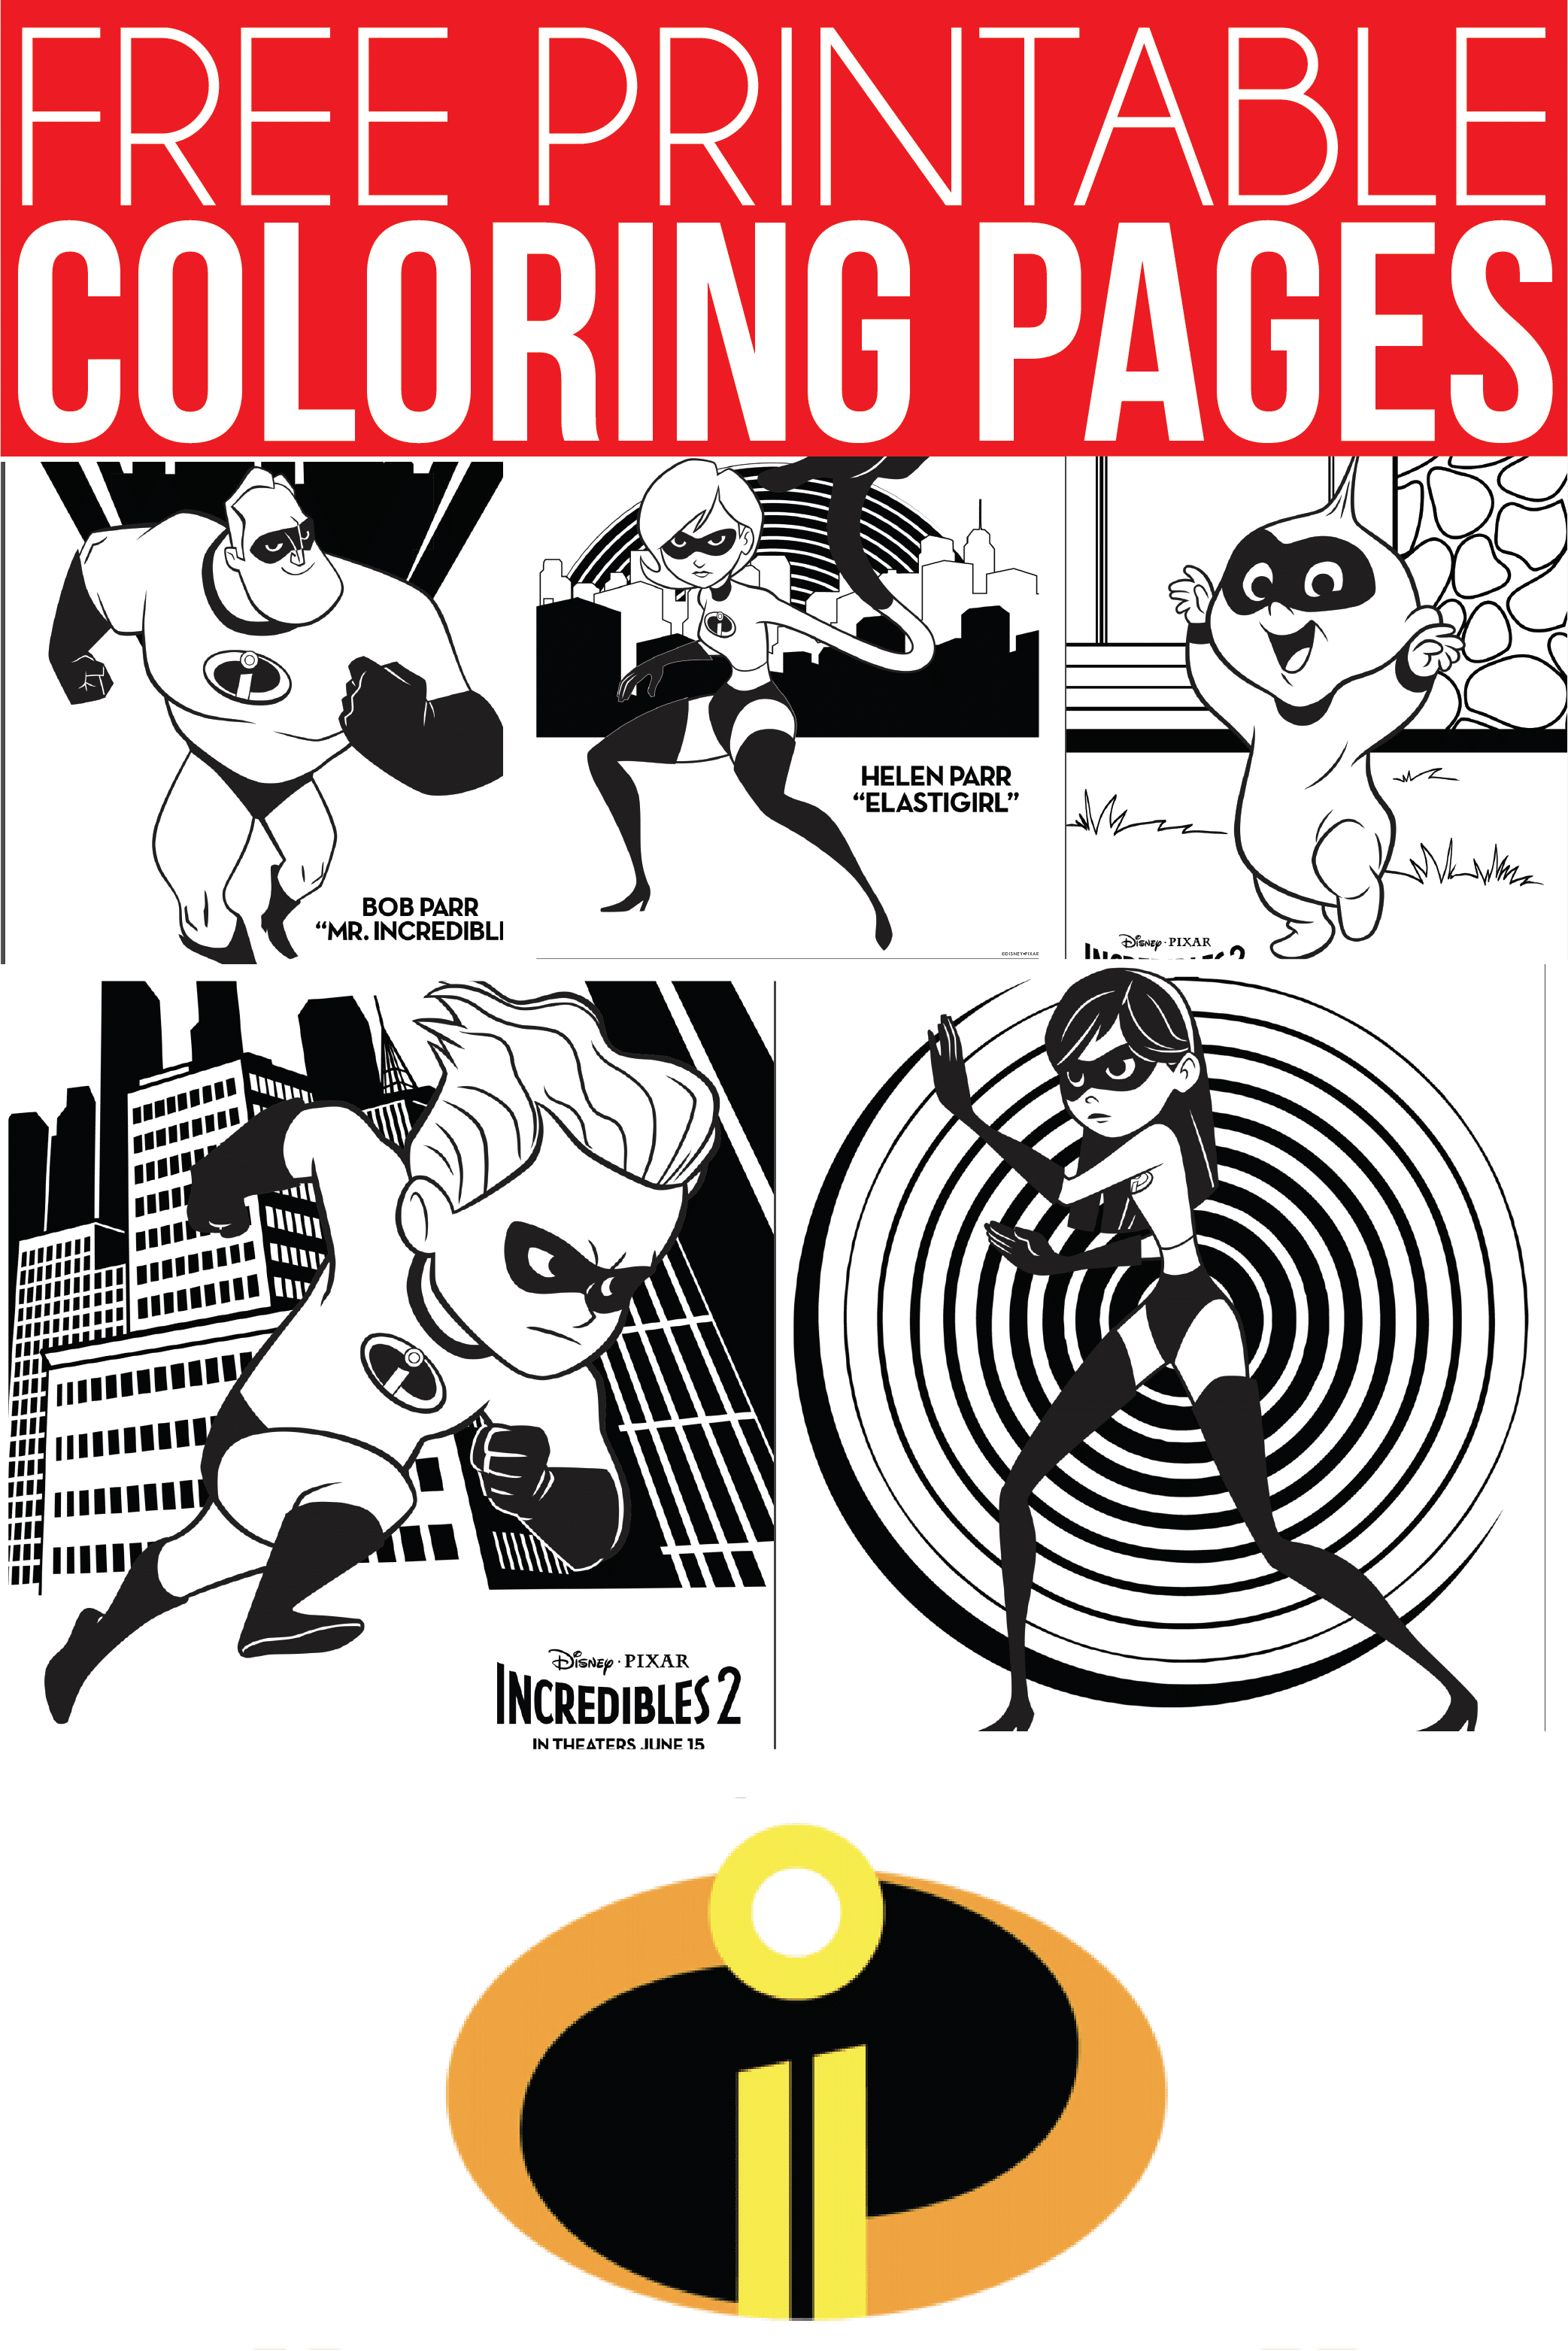 Free Printable Incredibles 2 Coloring Pages Coloring Pages Quote Coloring Pages Free Printable Coloring Pages